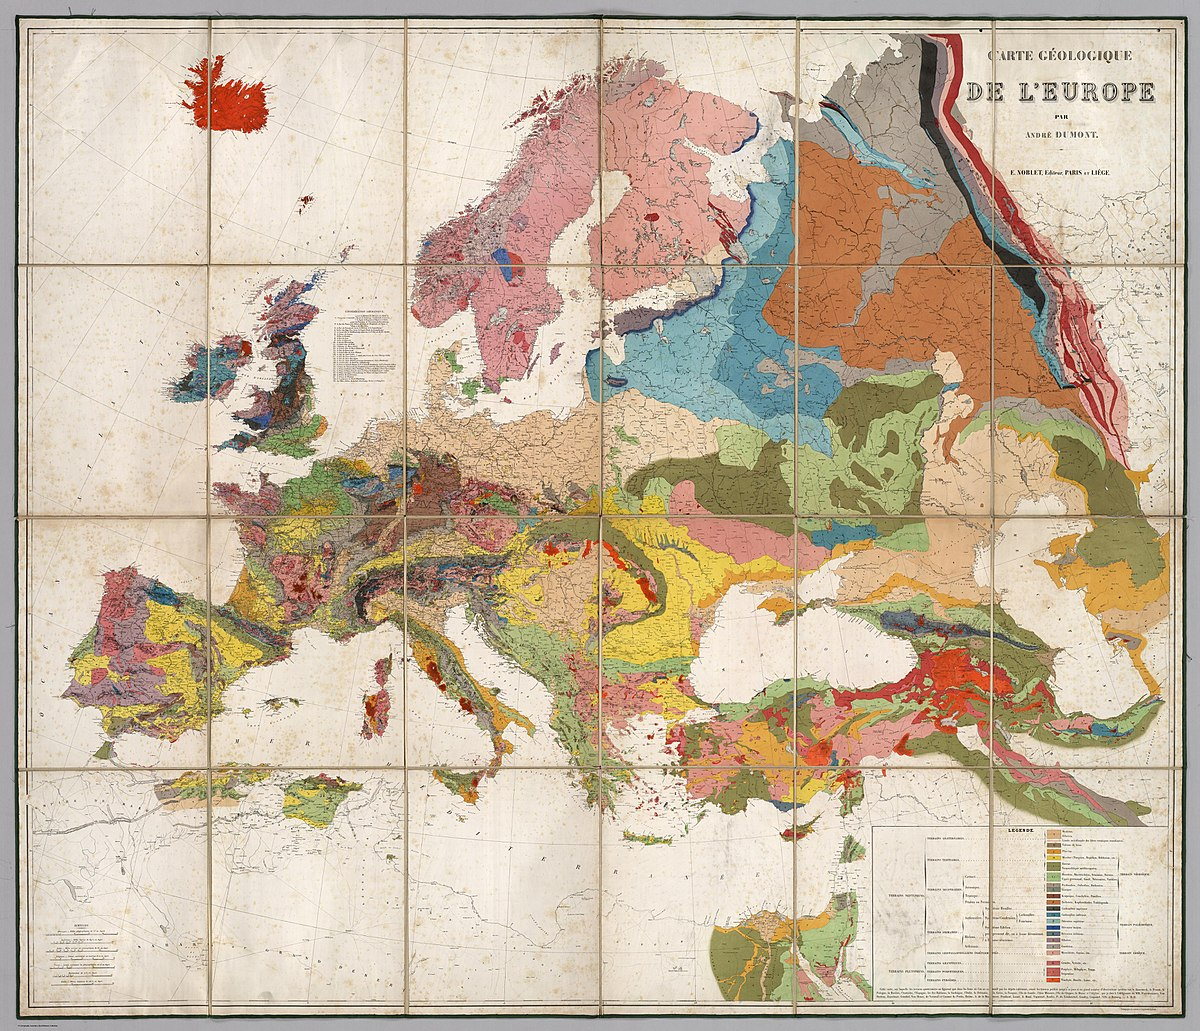 A French geological map of Europe.